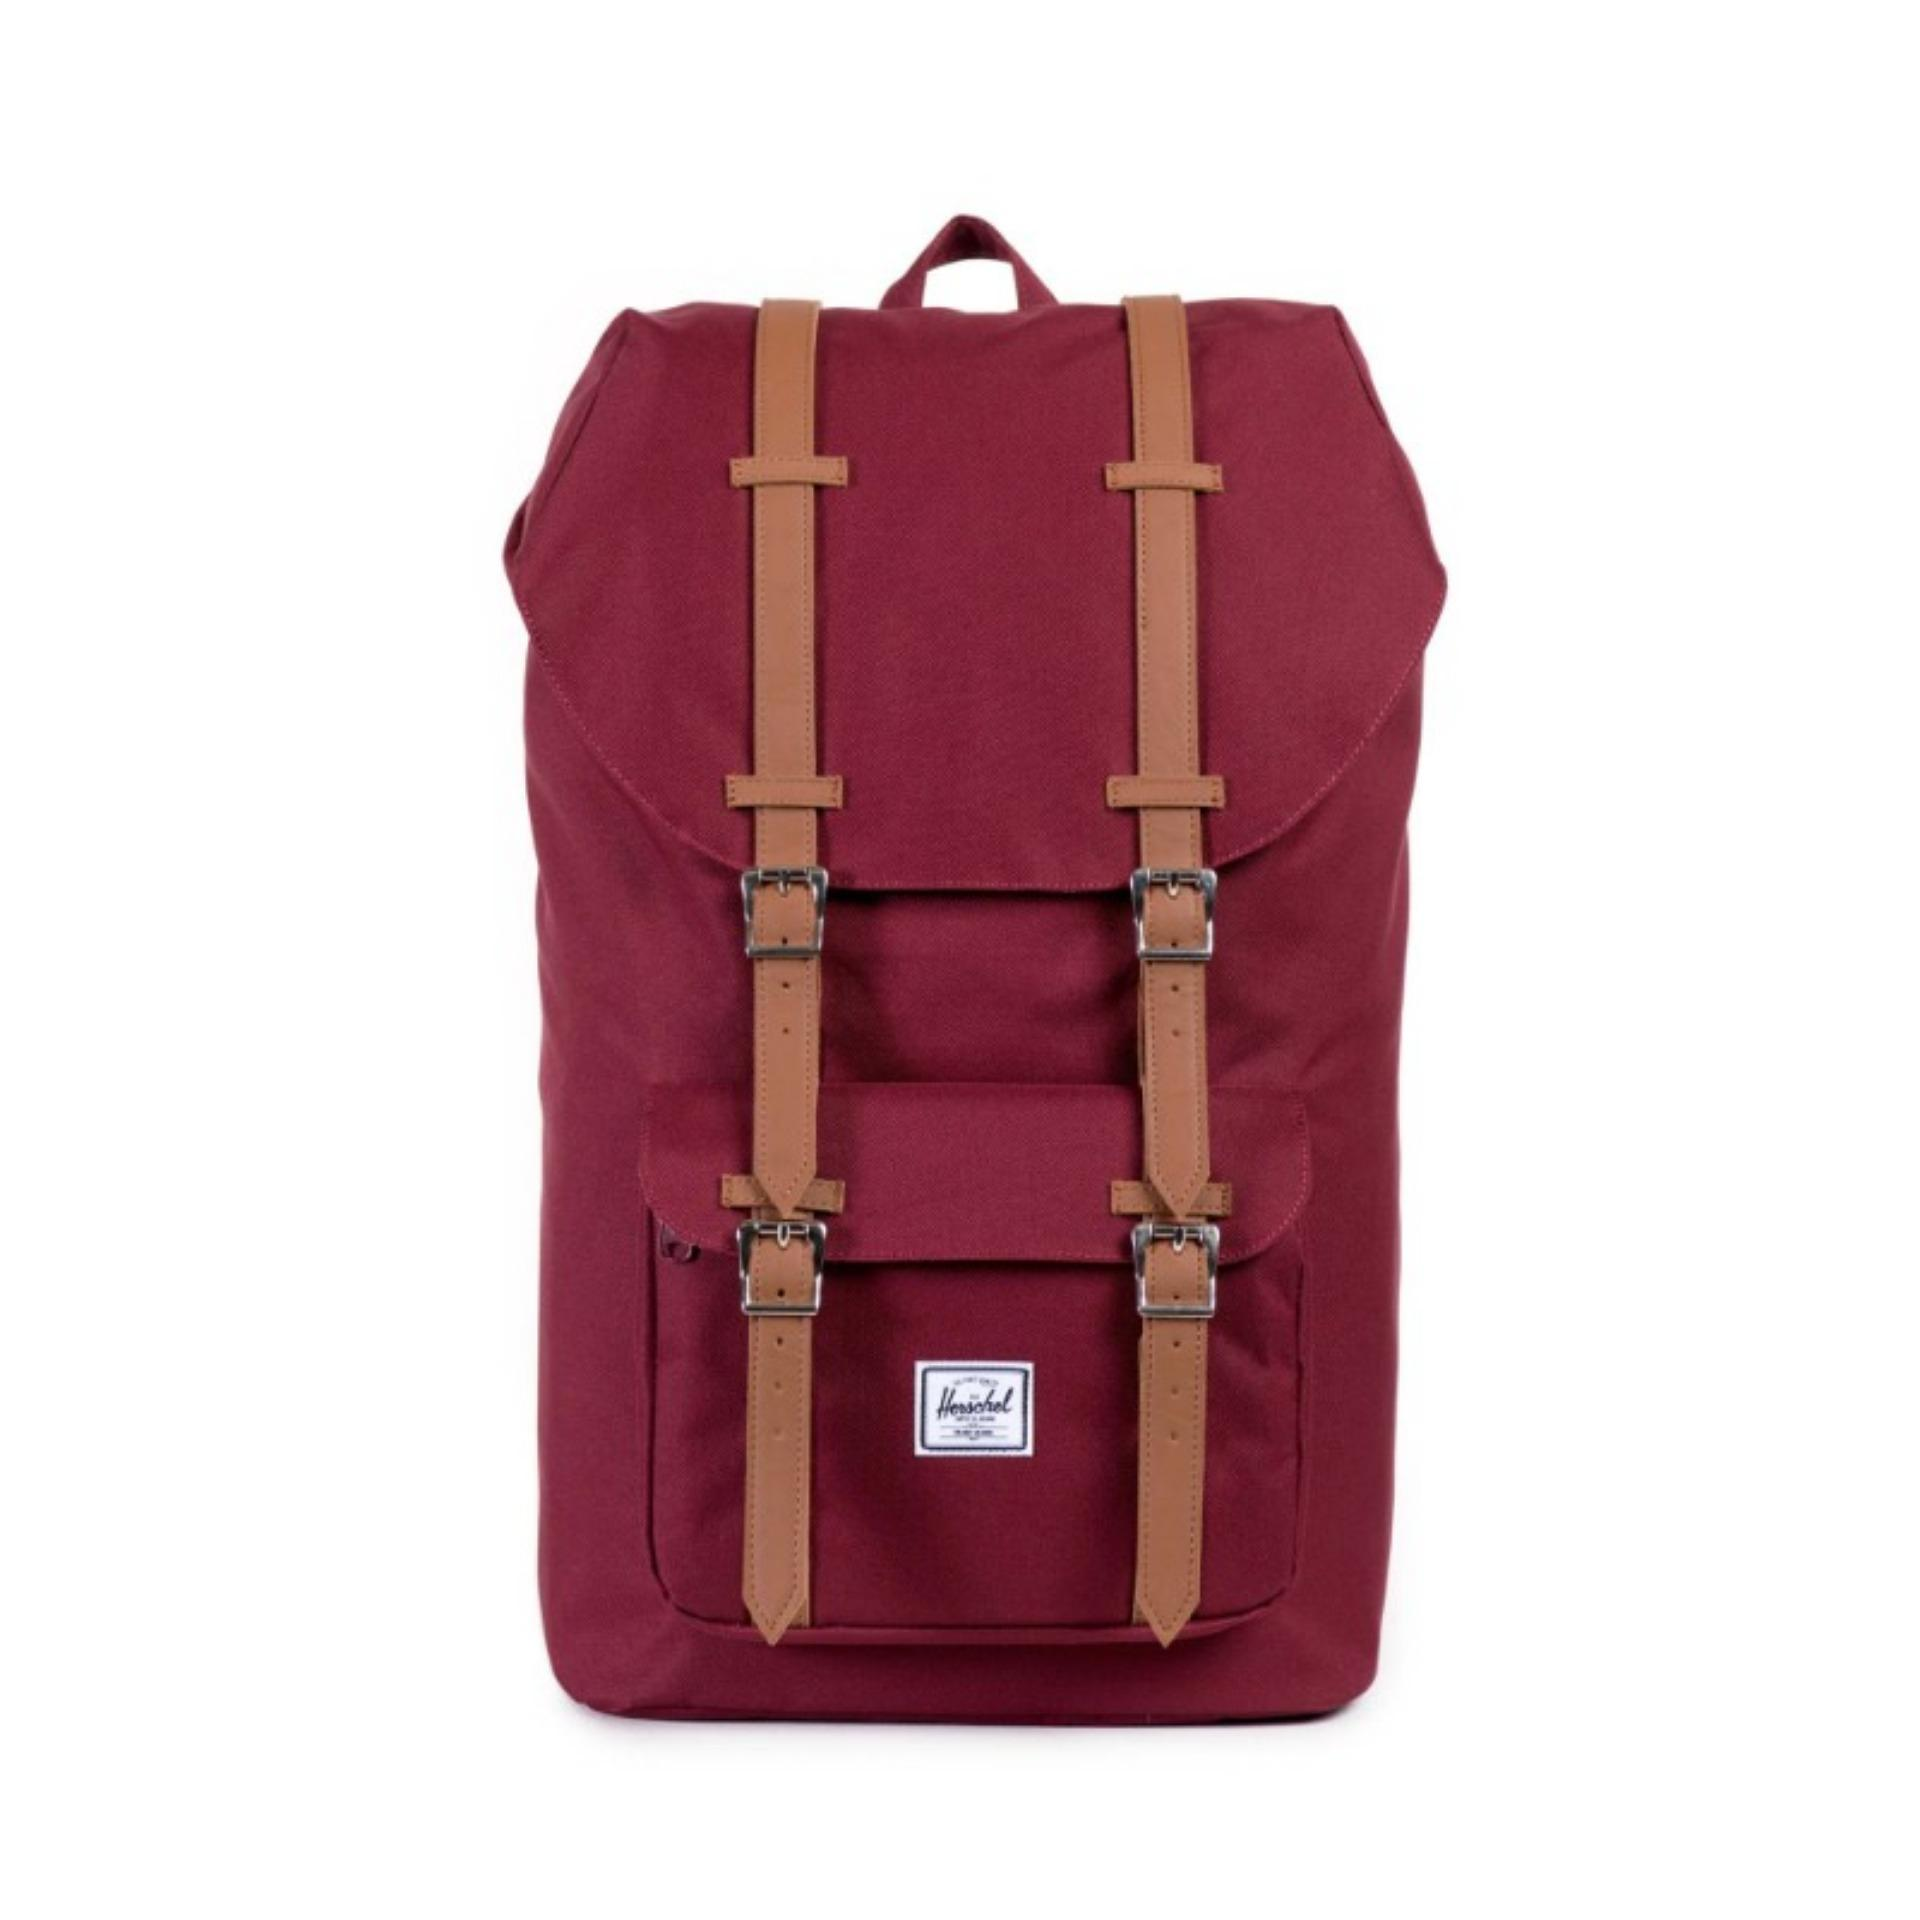 08ffcc9256a9 Buy Herschel Backpack Singapore- Fenix Toulouse Handball